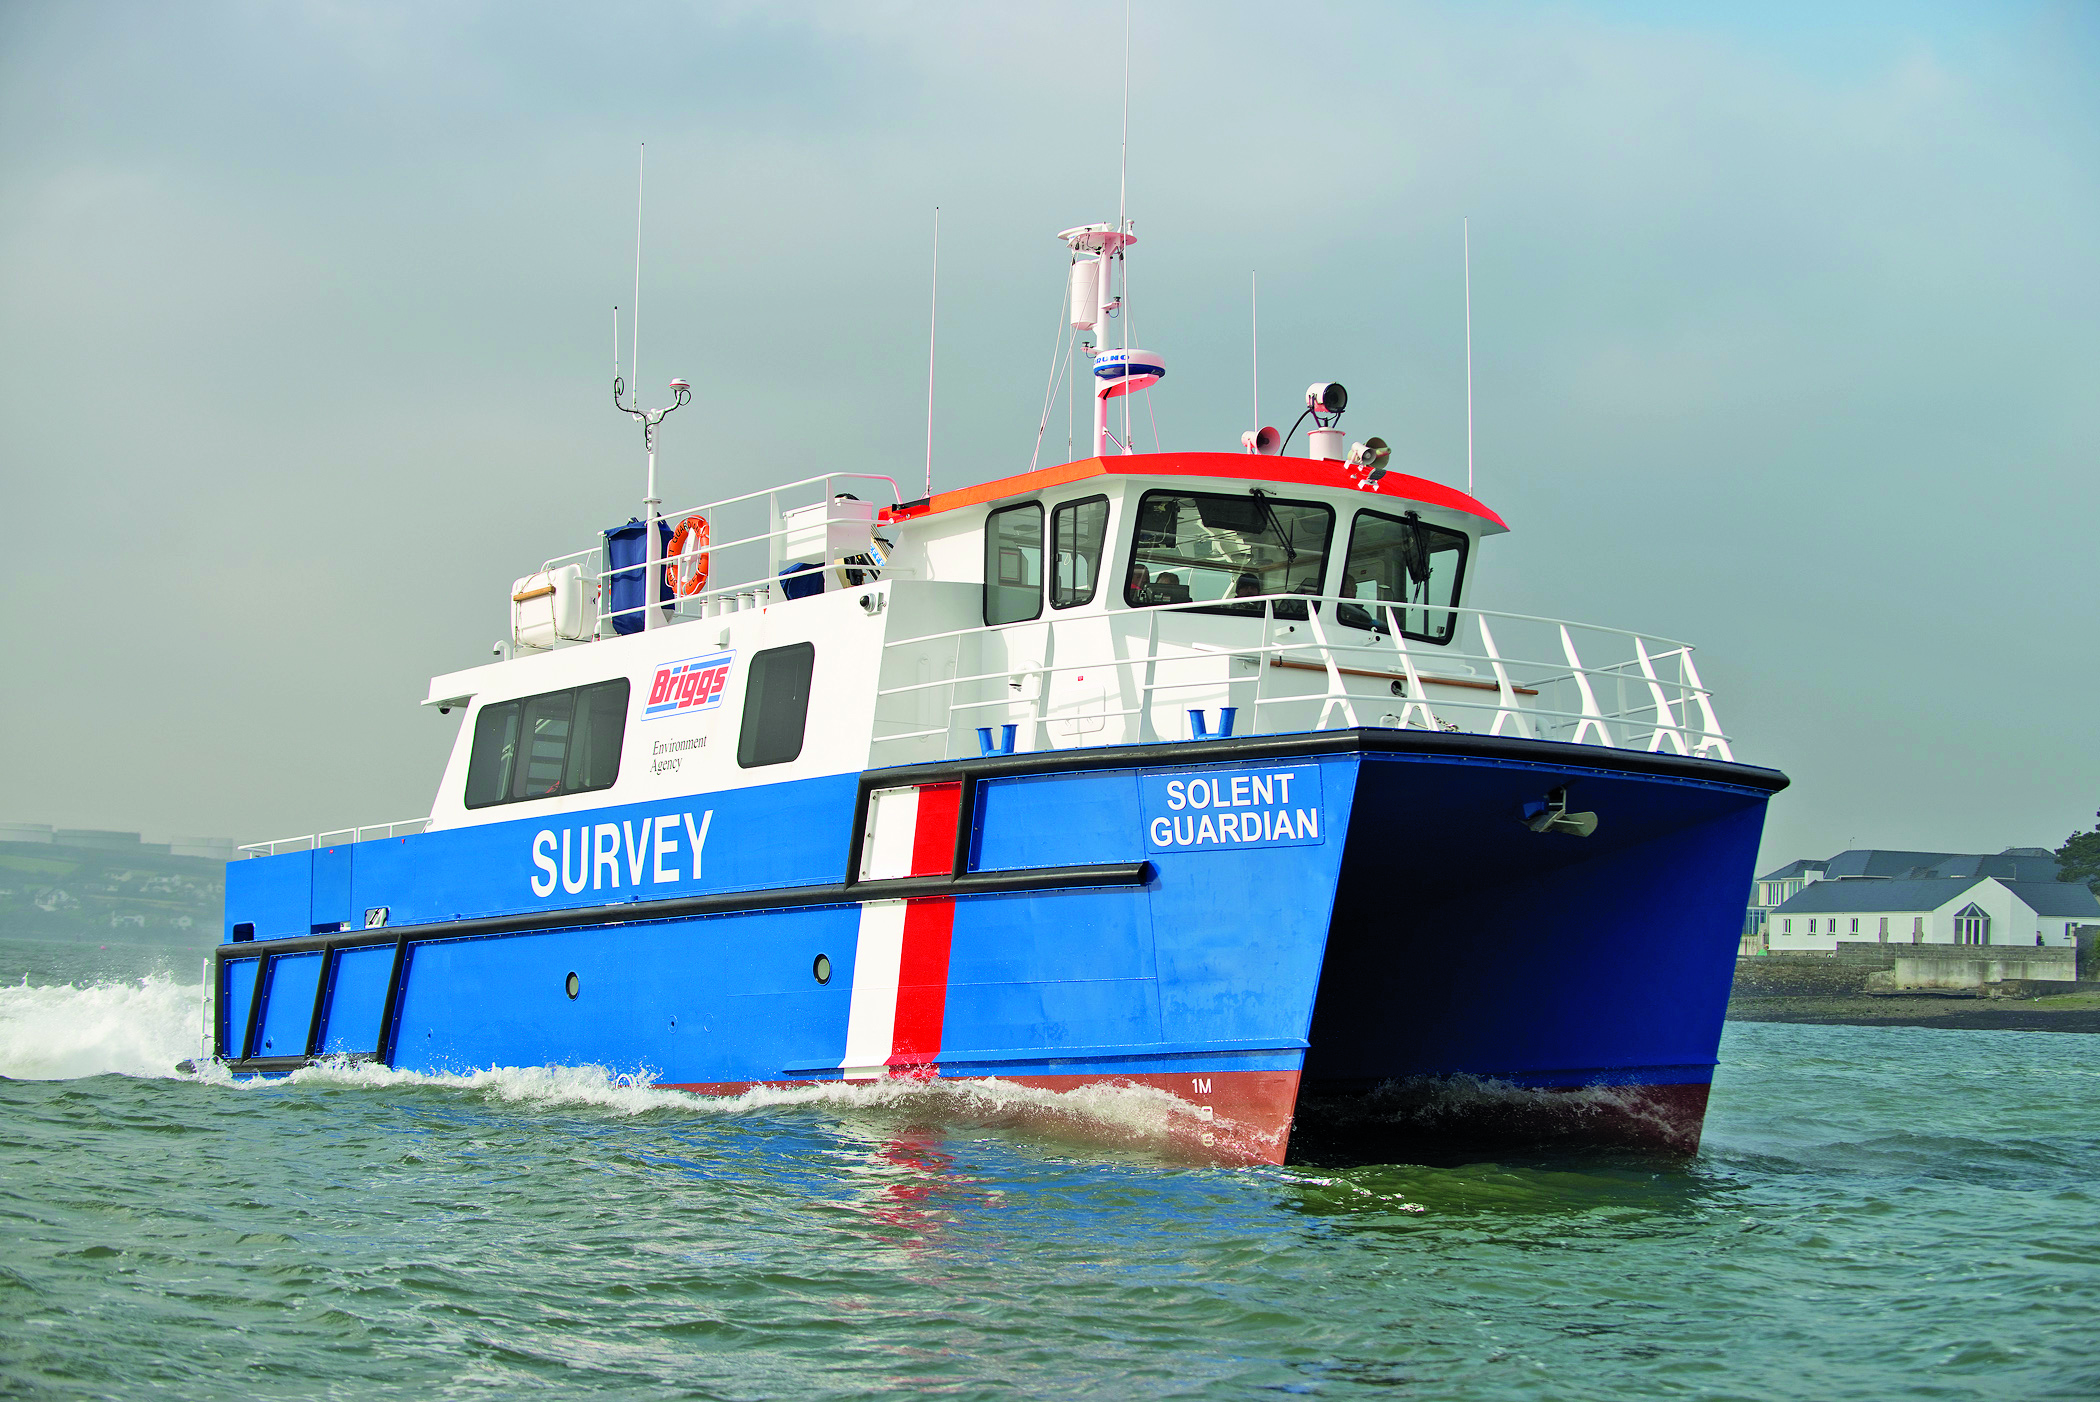 Image of Solent Guardian